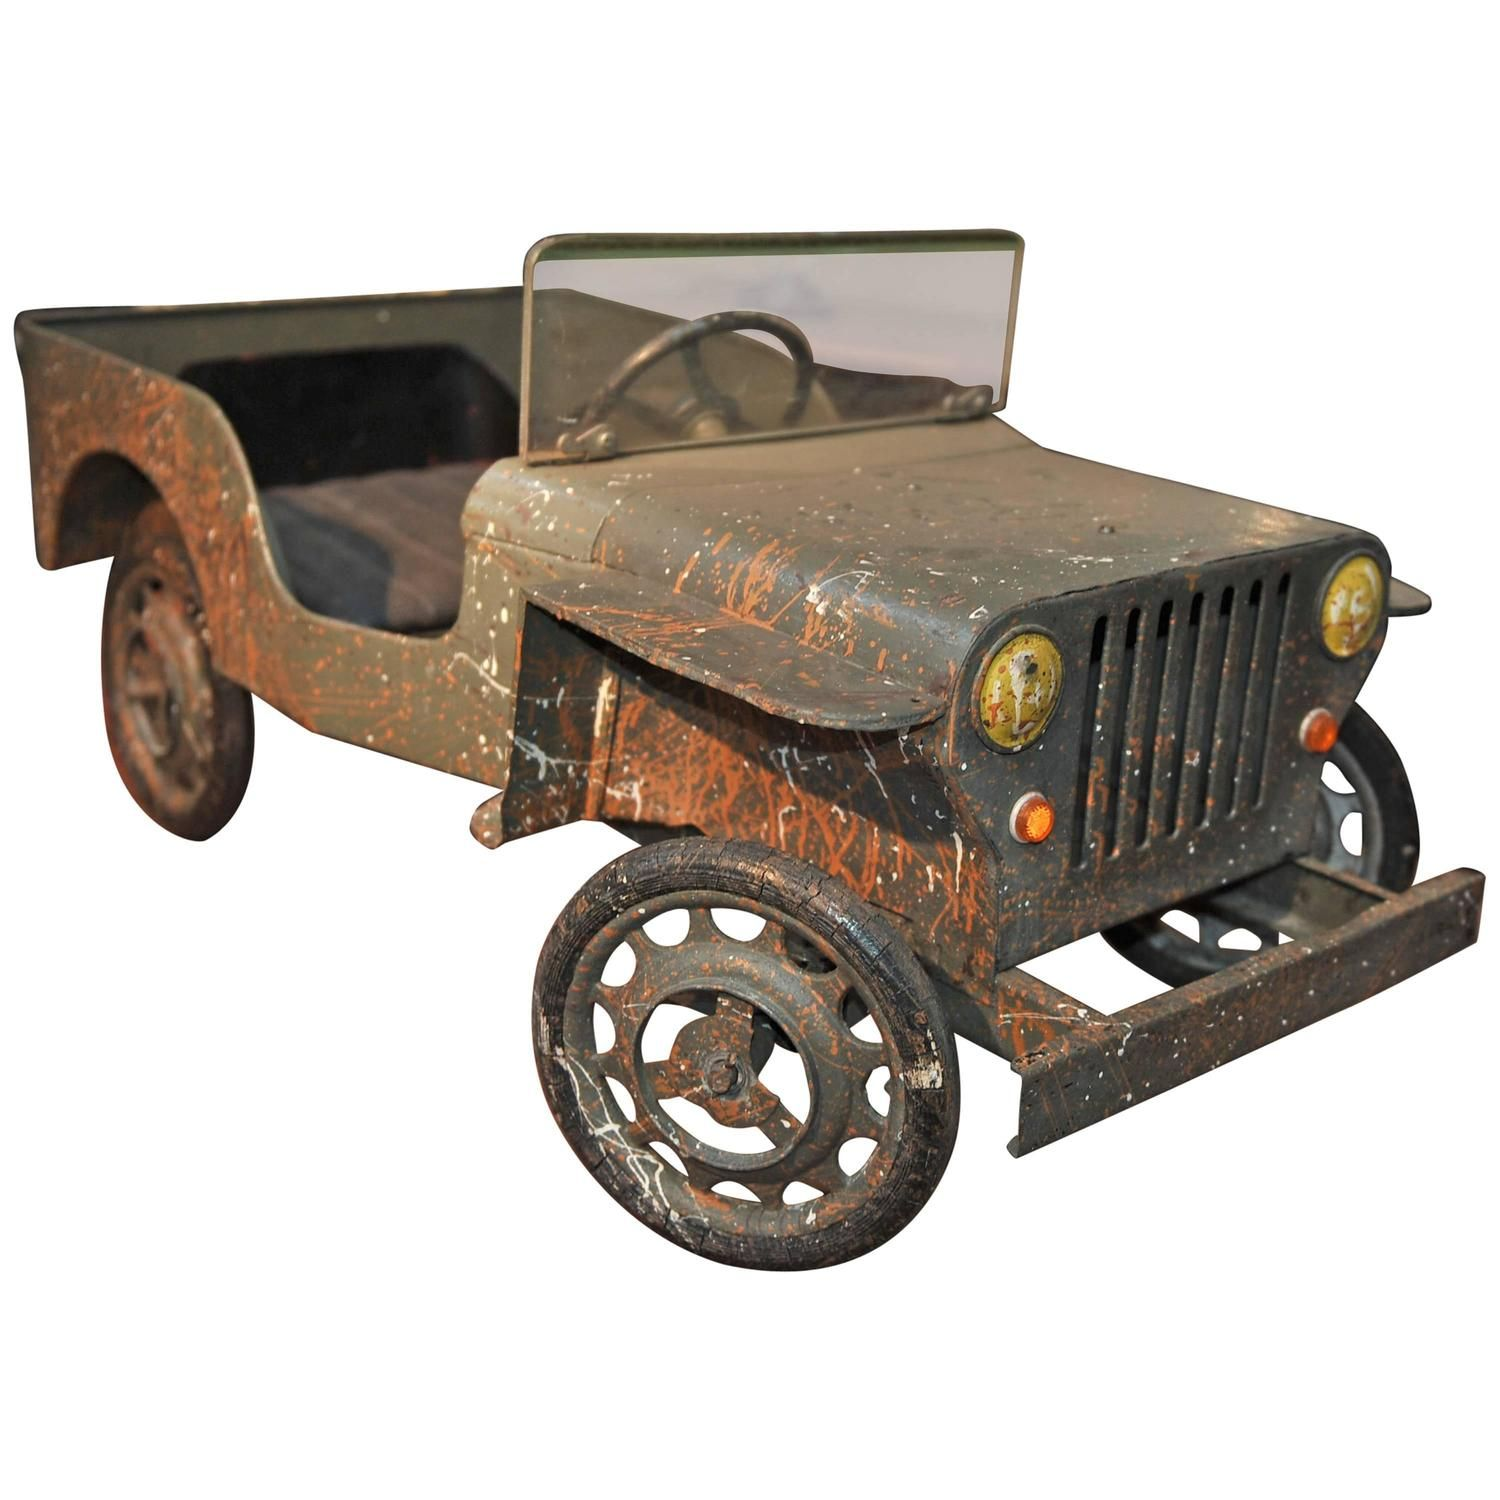 Jeep toys images  Jeep Iron Pedal Car Manufactured in France circa   Pedal car